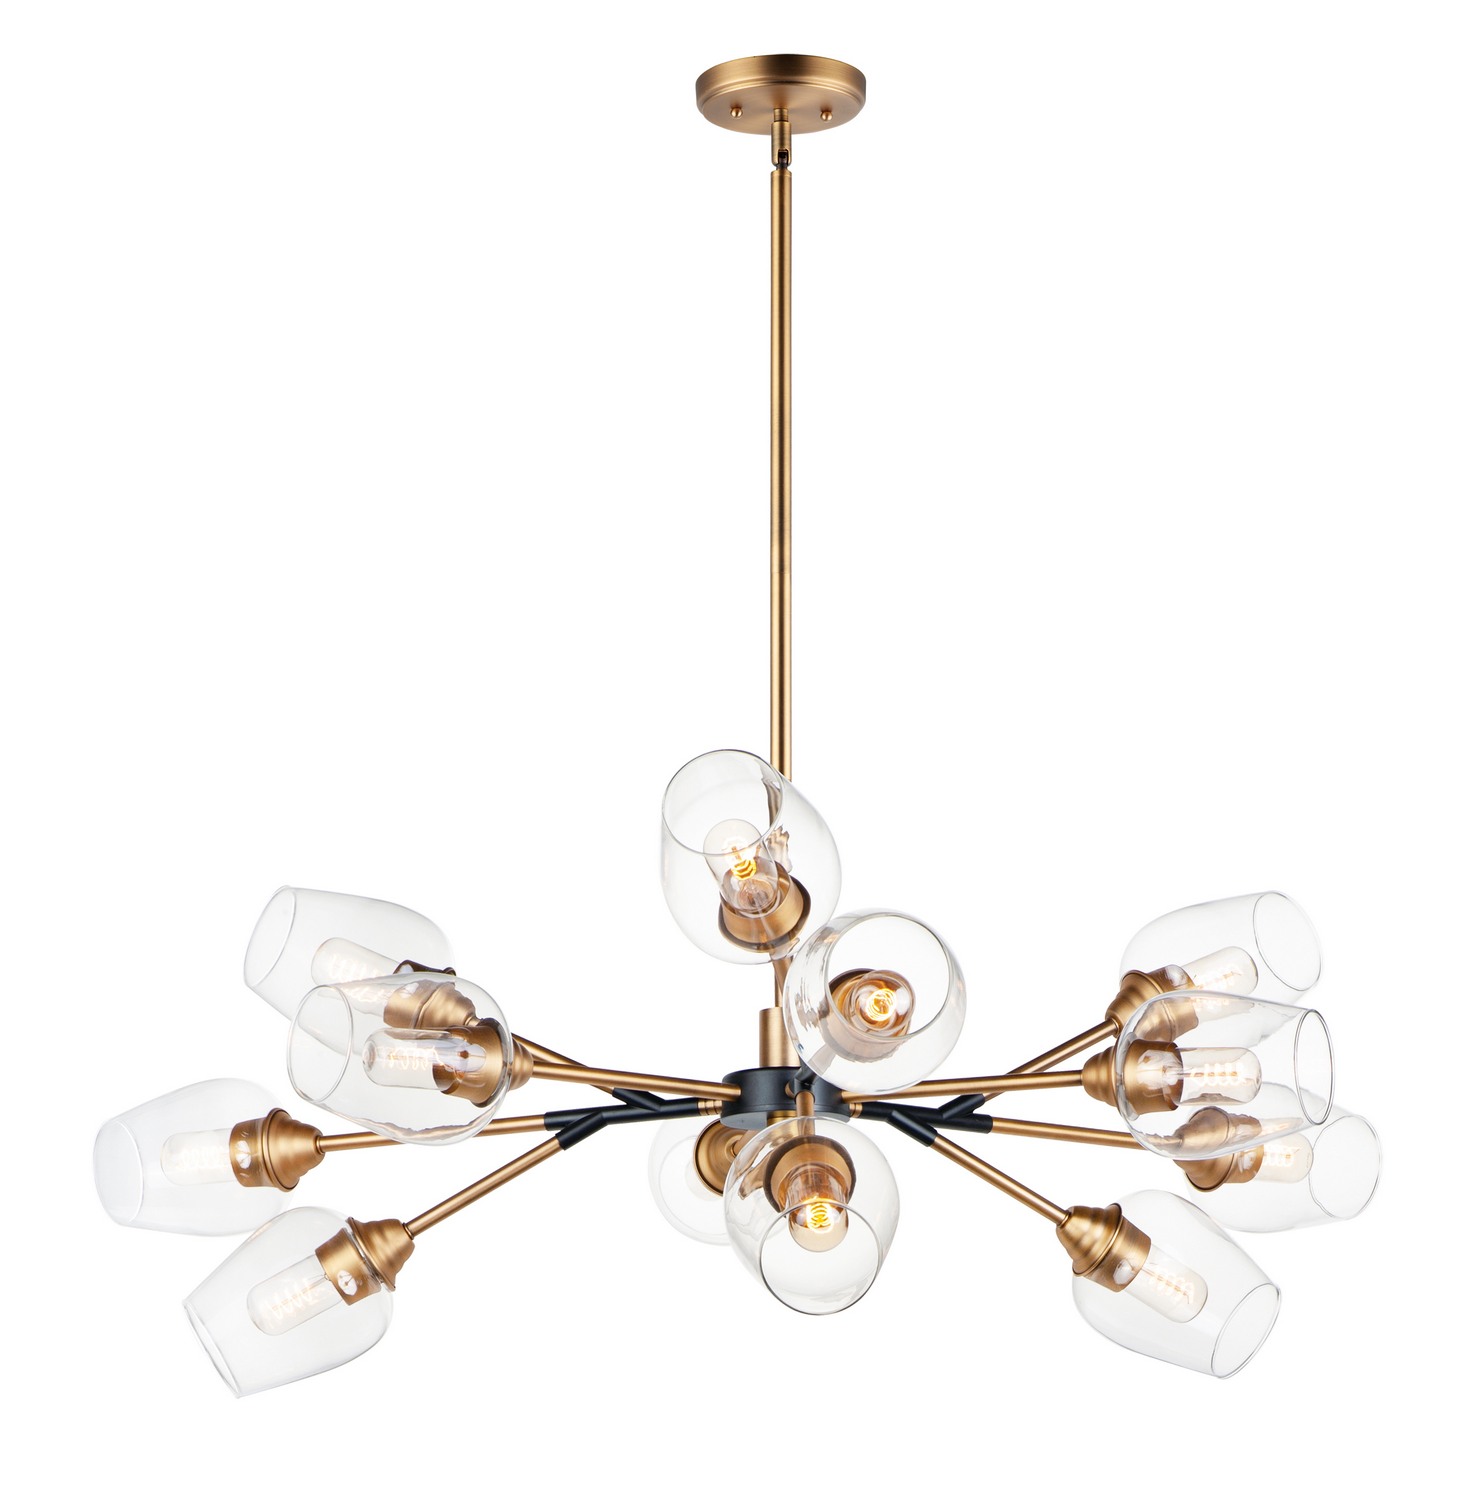 12 Light Chandelier from the Savvy collection by Maxim 26347CLABBK